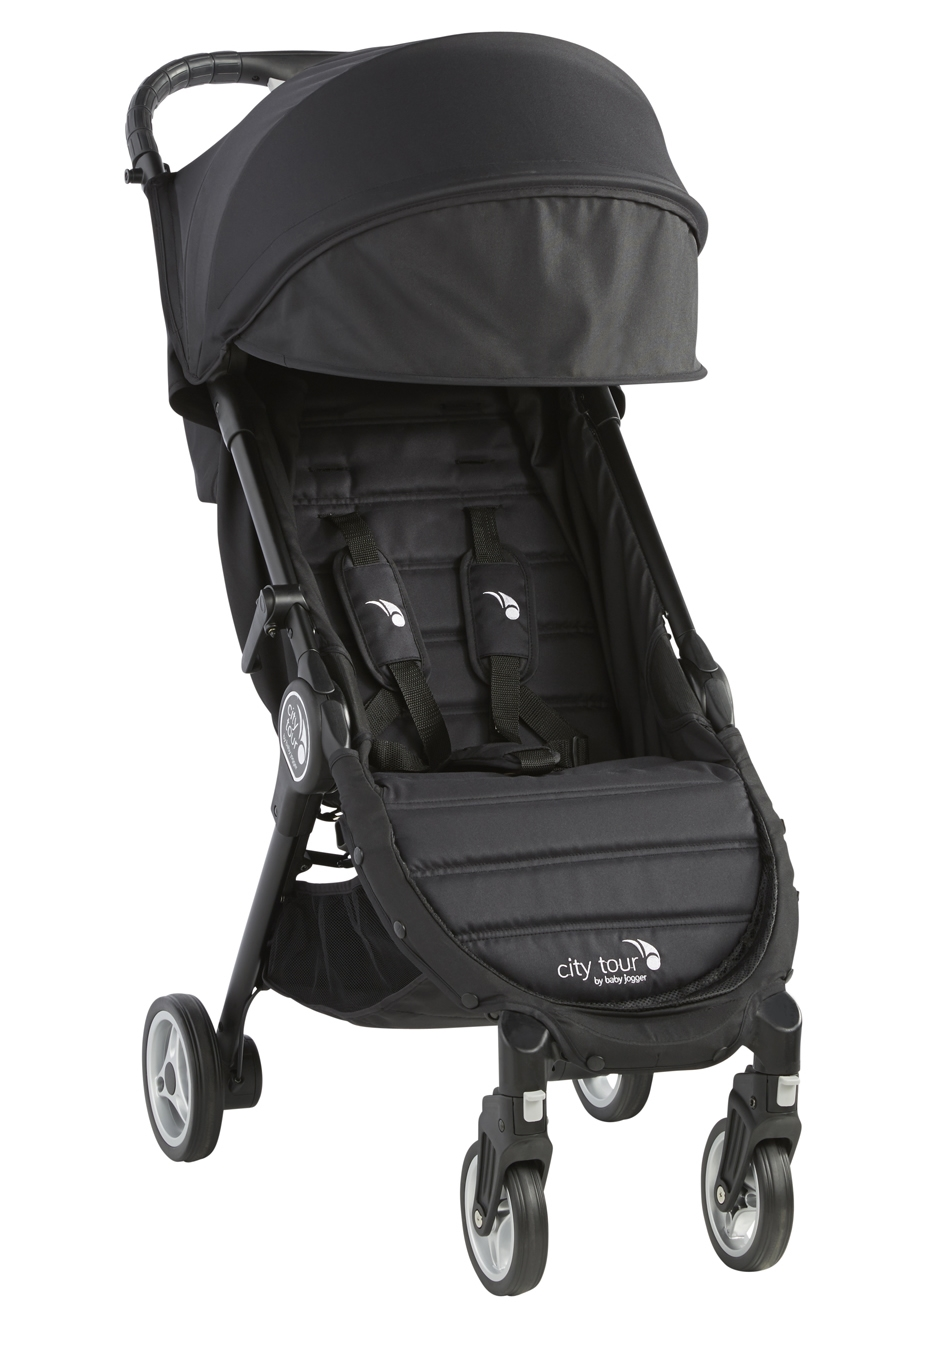 Baby Jogger City Tour Range